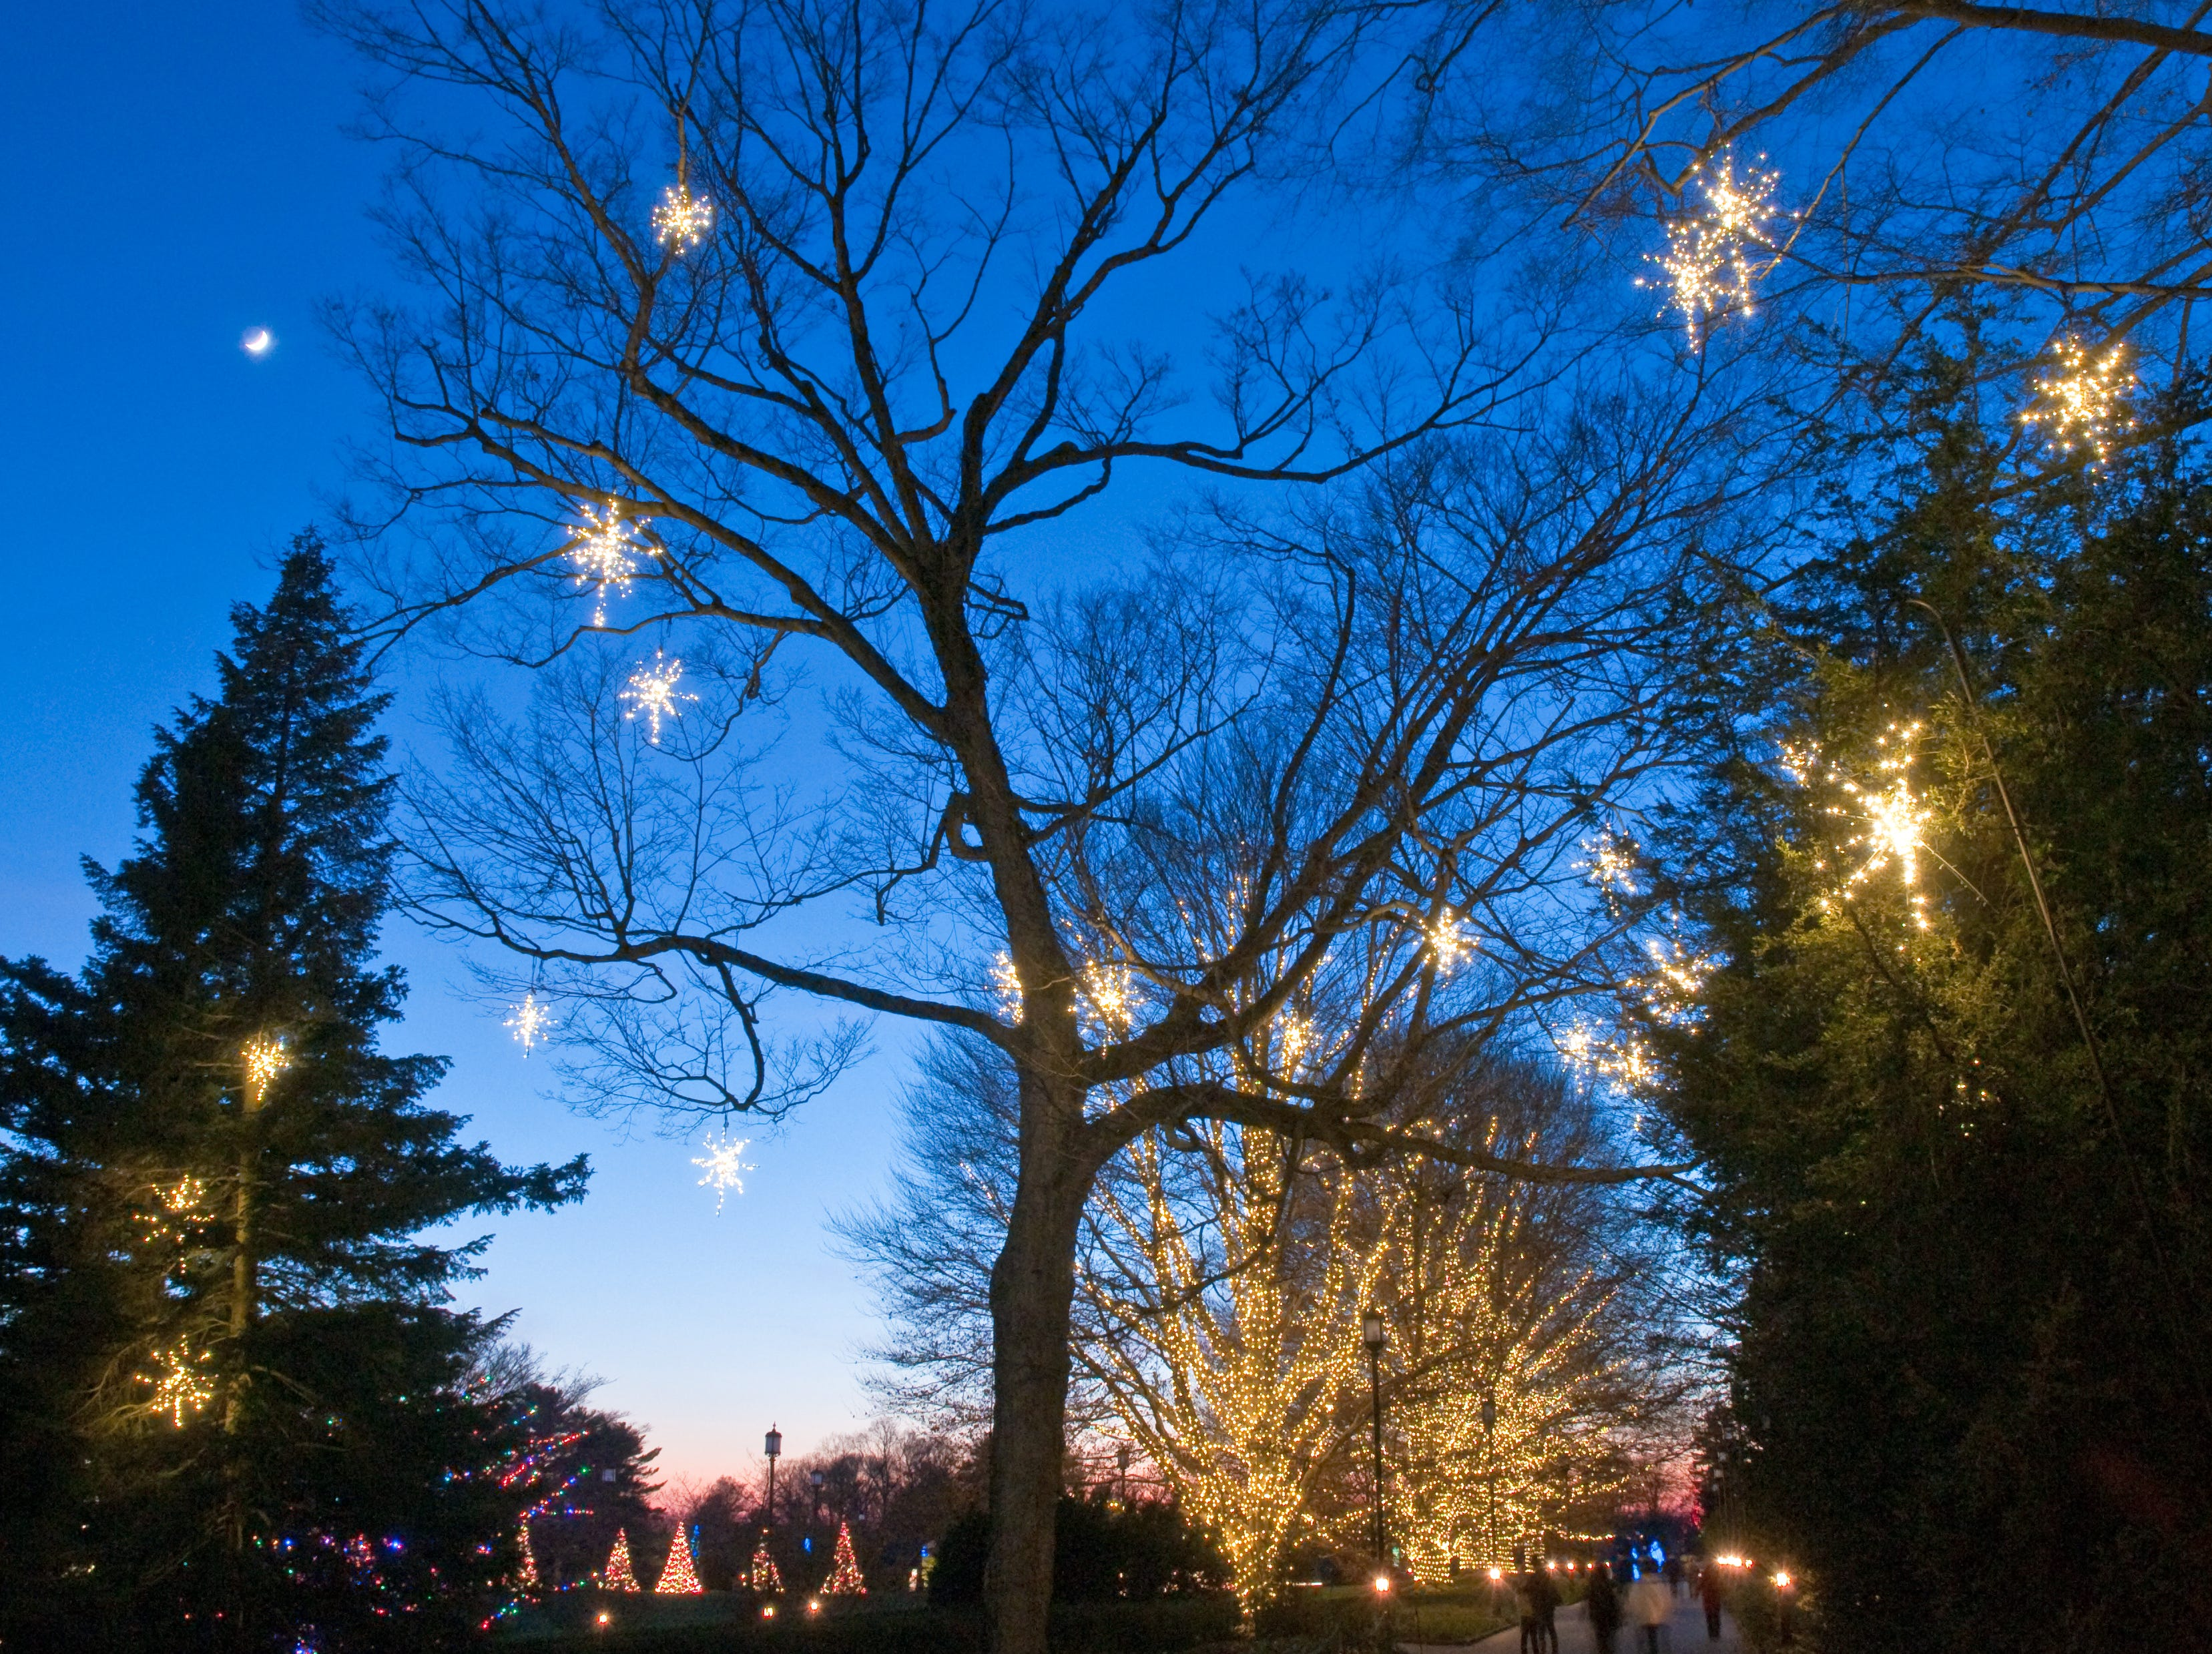 More than 500,000 lights spread over 150 trees light up Longwood Gardens during its 2018 Christmas exhibit.